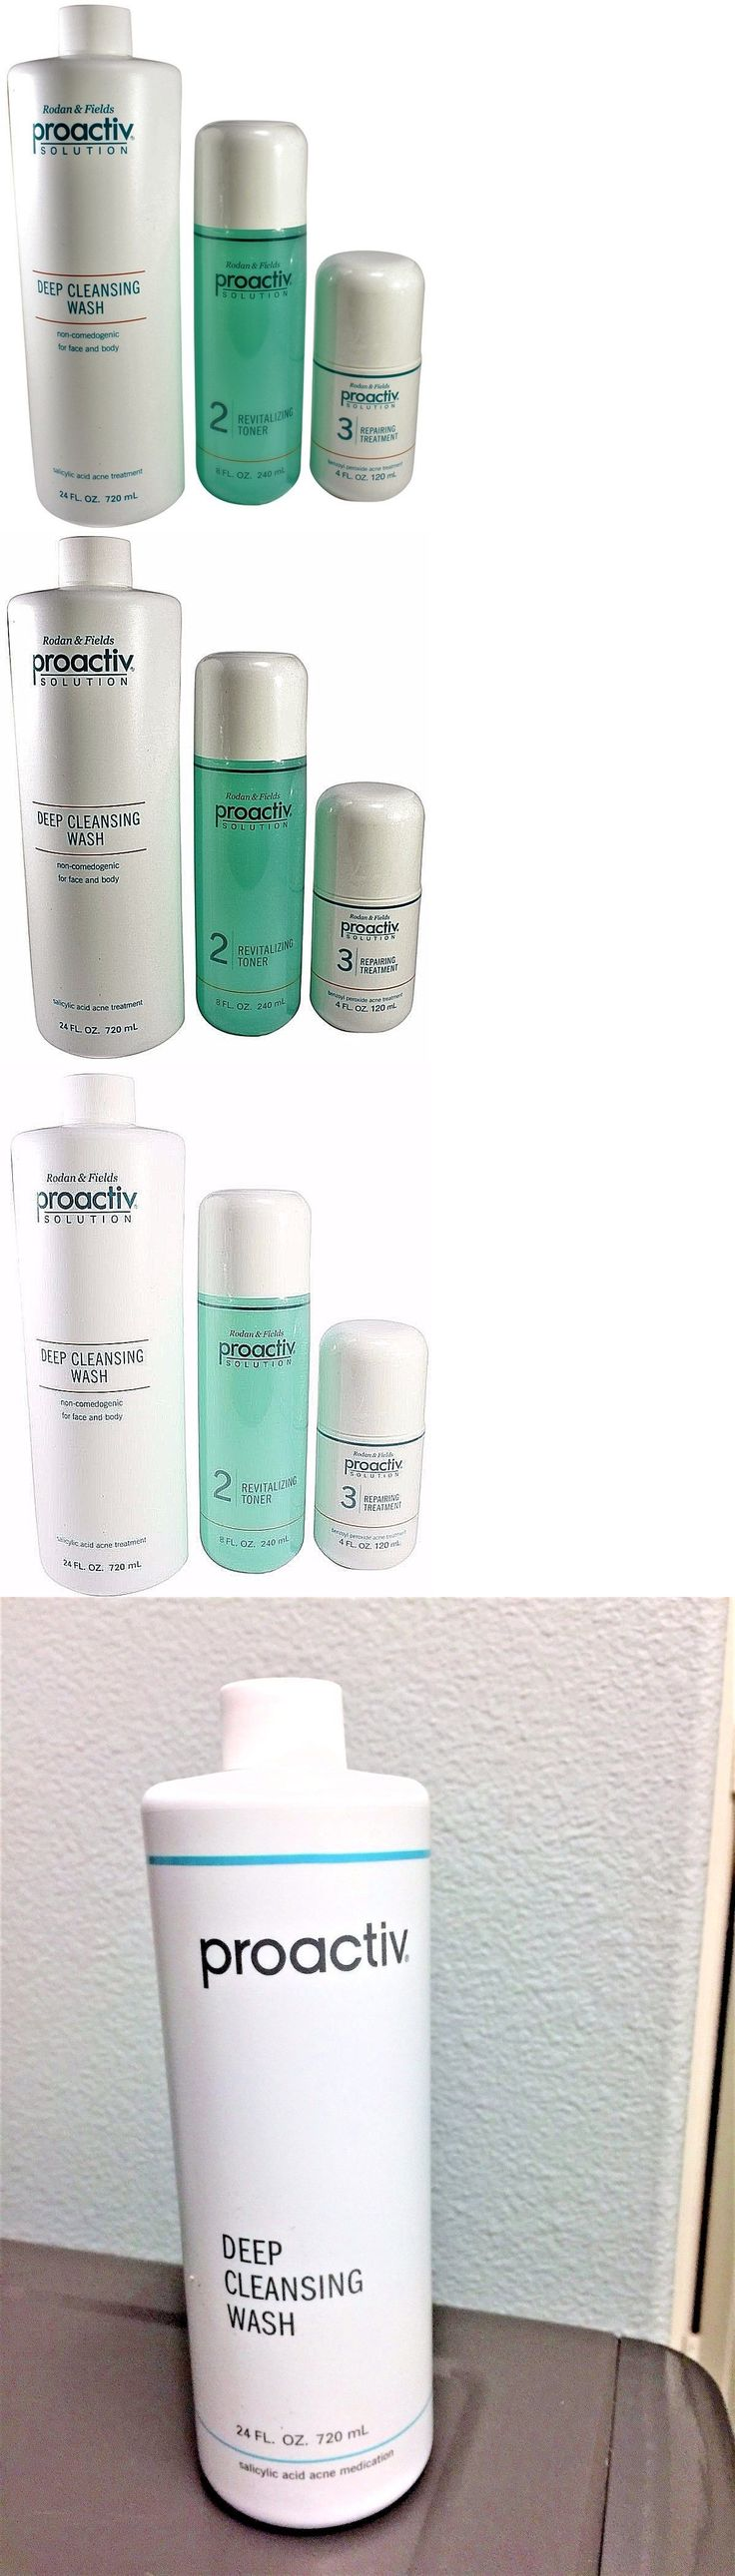 Acne and Blemish Treatments: Proactiv 120 Day 3Pc Kit Cleanser Wash Toner Lotion Proactive Step System 3-2018 -> BUY IT NOW ONLY: $68.95 on eBay!